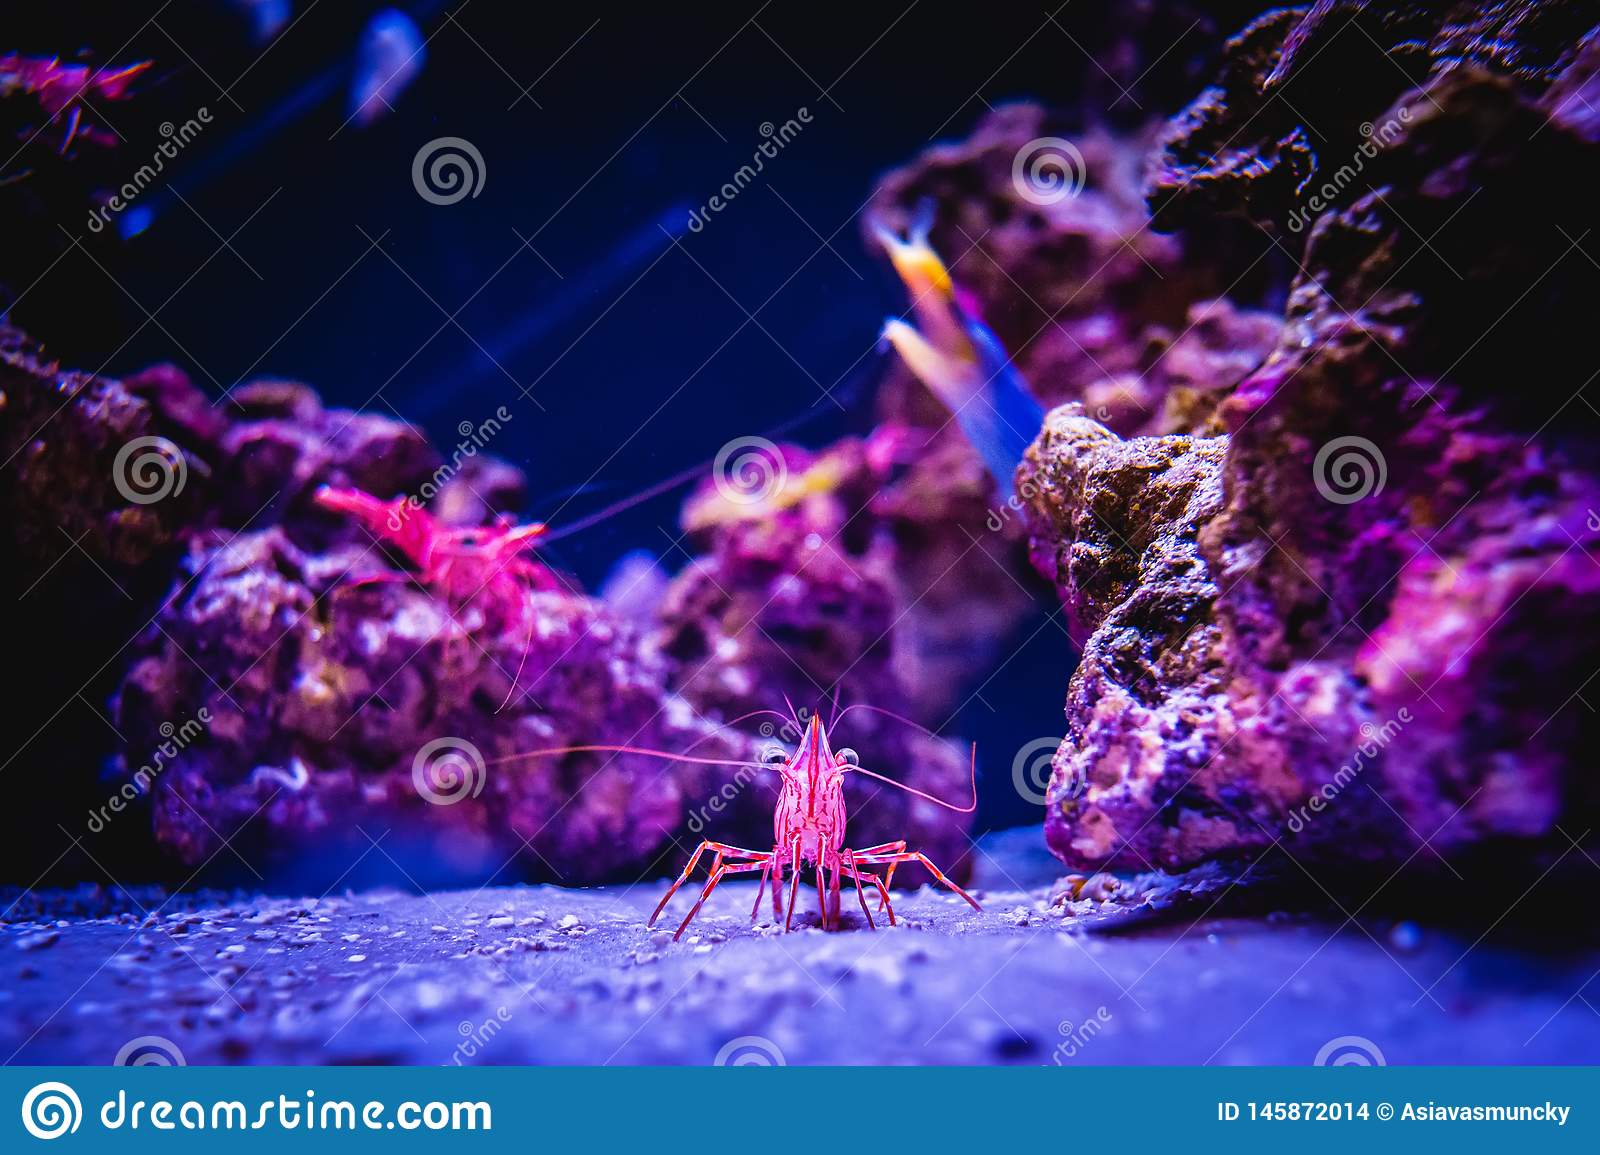 Pacific Cleaner Shrimp in a Coral Reef Underwater Environment